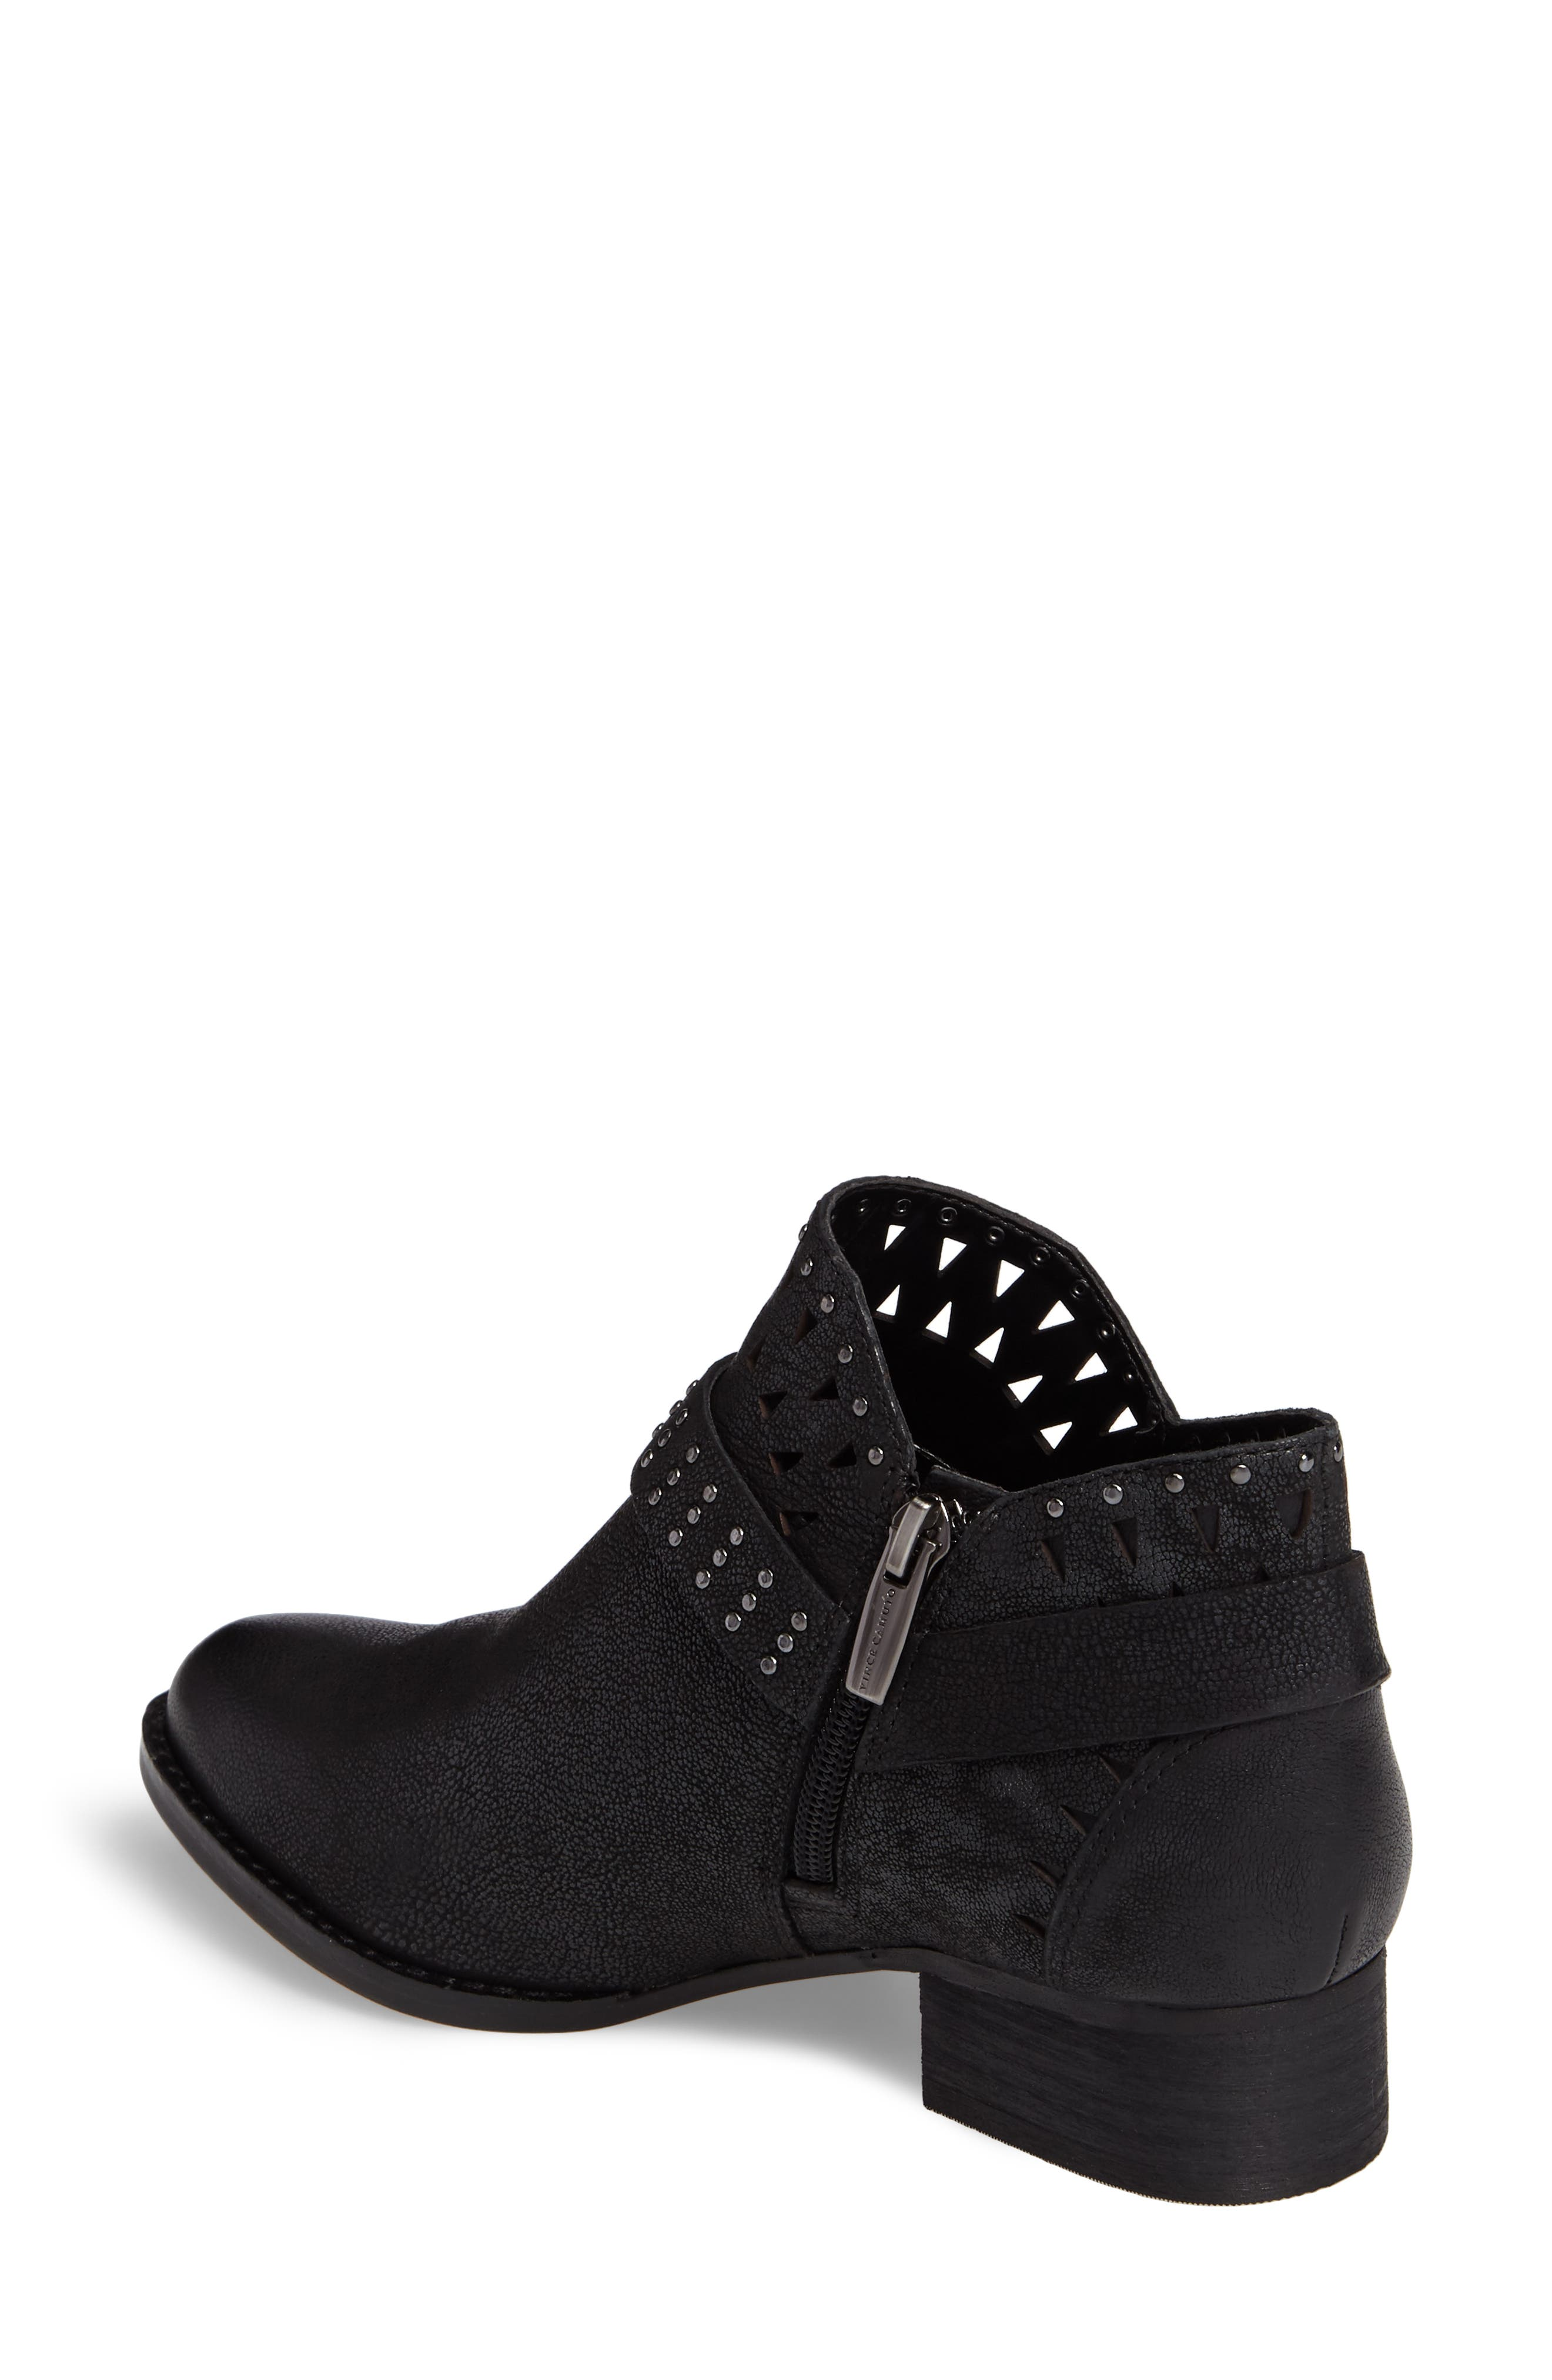 Calley Strappy Studded Bootie,                             Alternate thumbnail 2, color,                             001